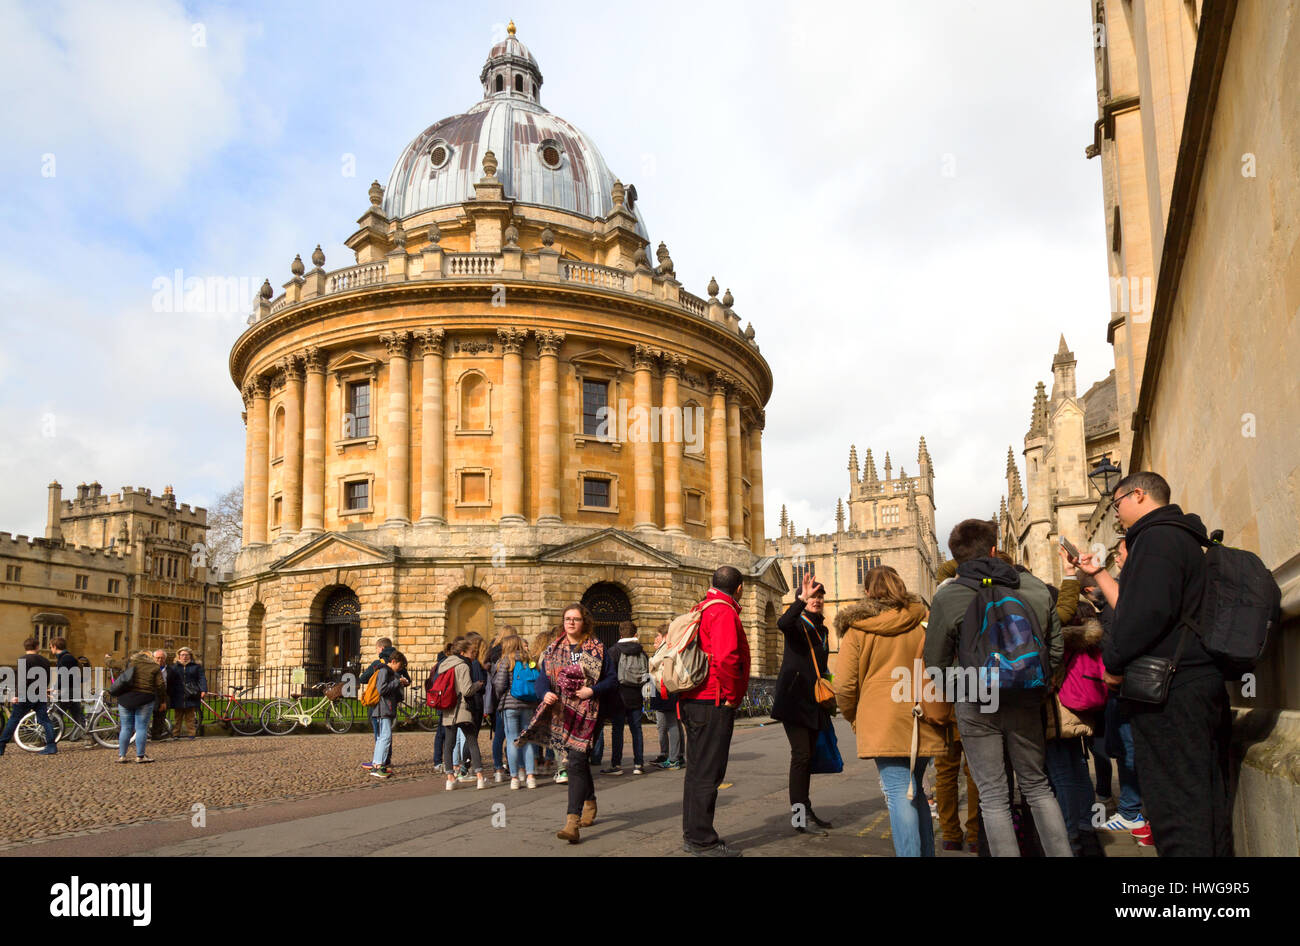 Oxford University students at the Radcliffe Camera, Oxford city centre, Oxford UK - Stock Image